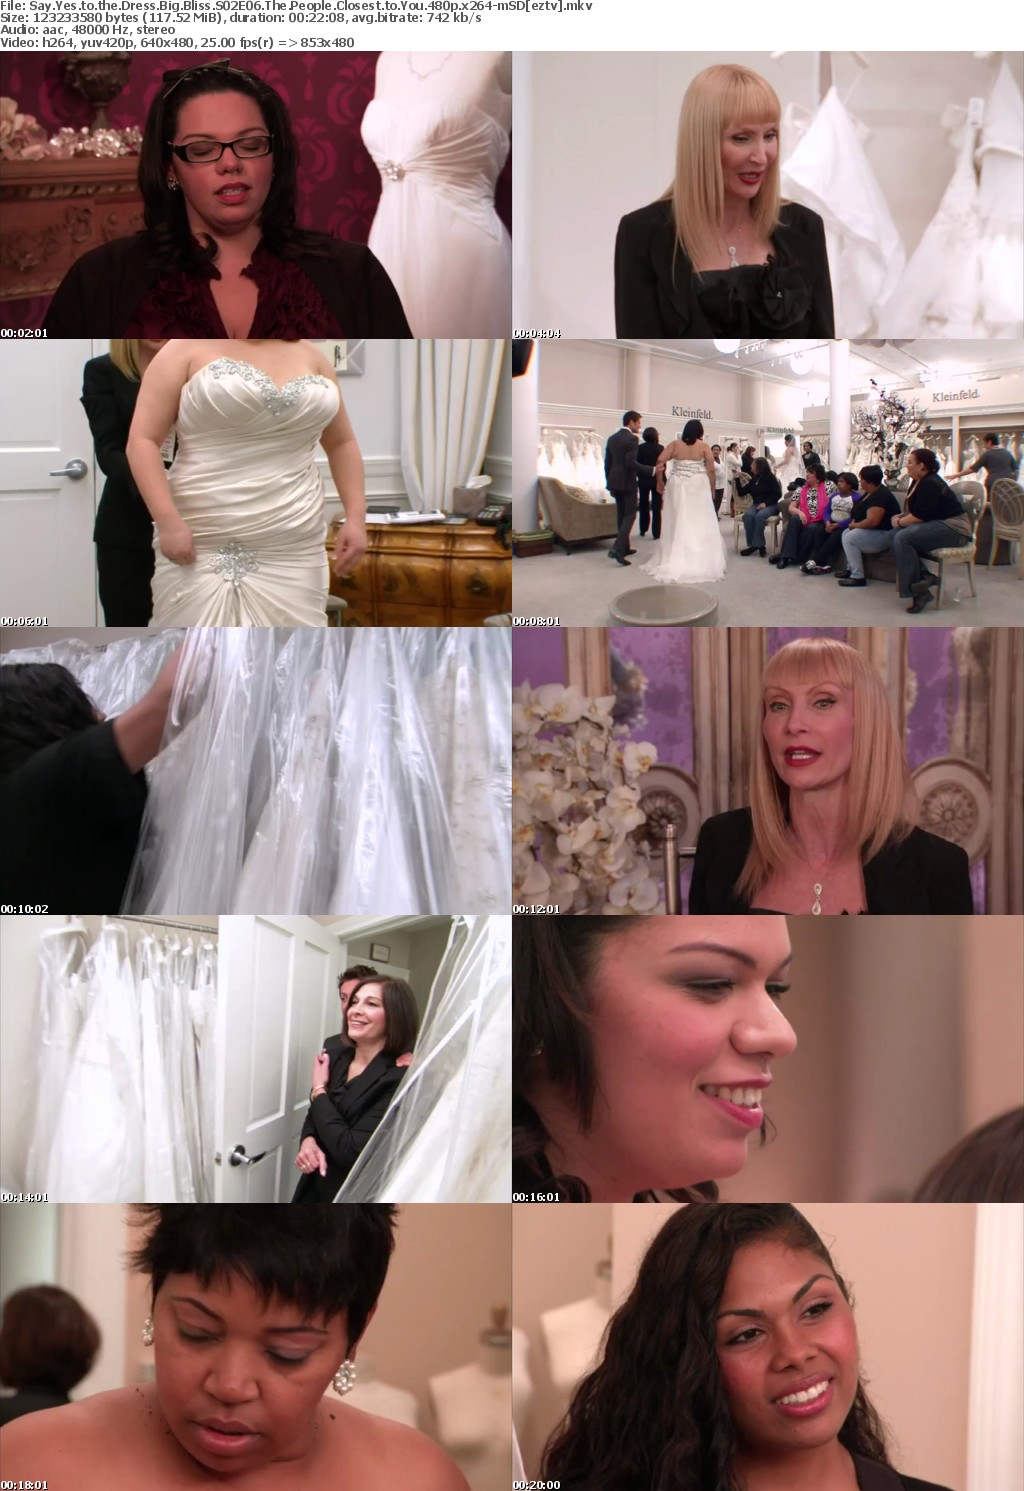 Say Yes to the Dress Big Bliss S02E06 The People Closest to You 480p x264-mSD